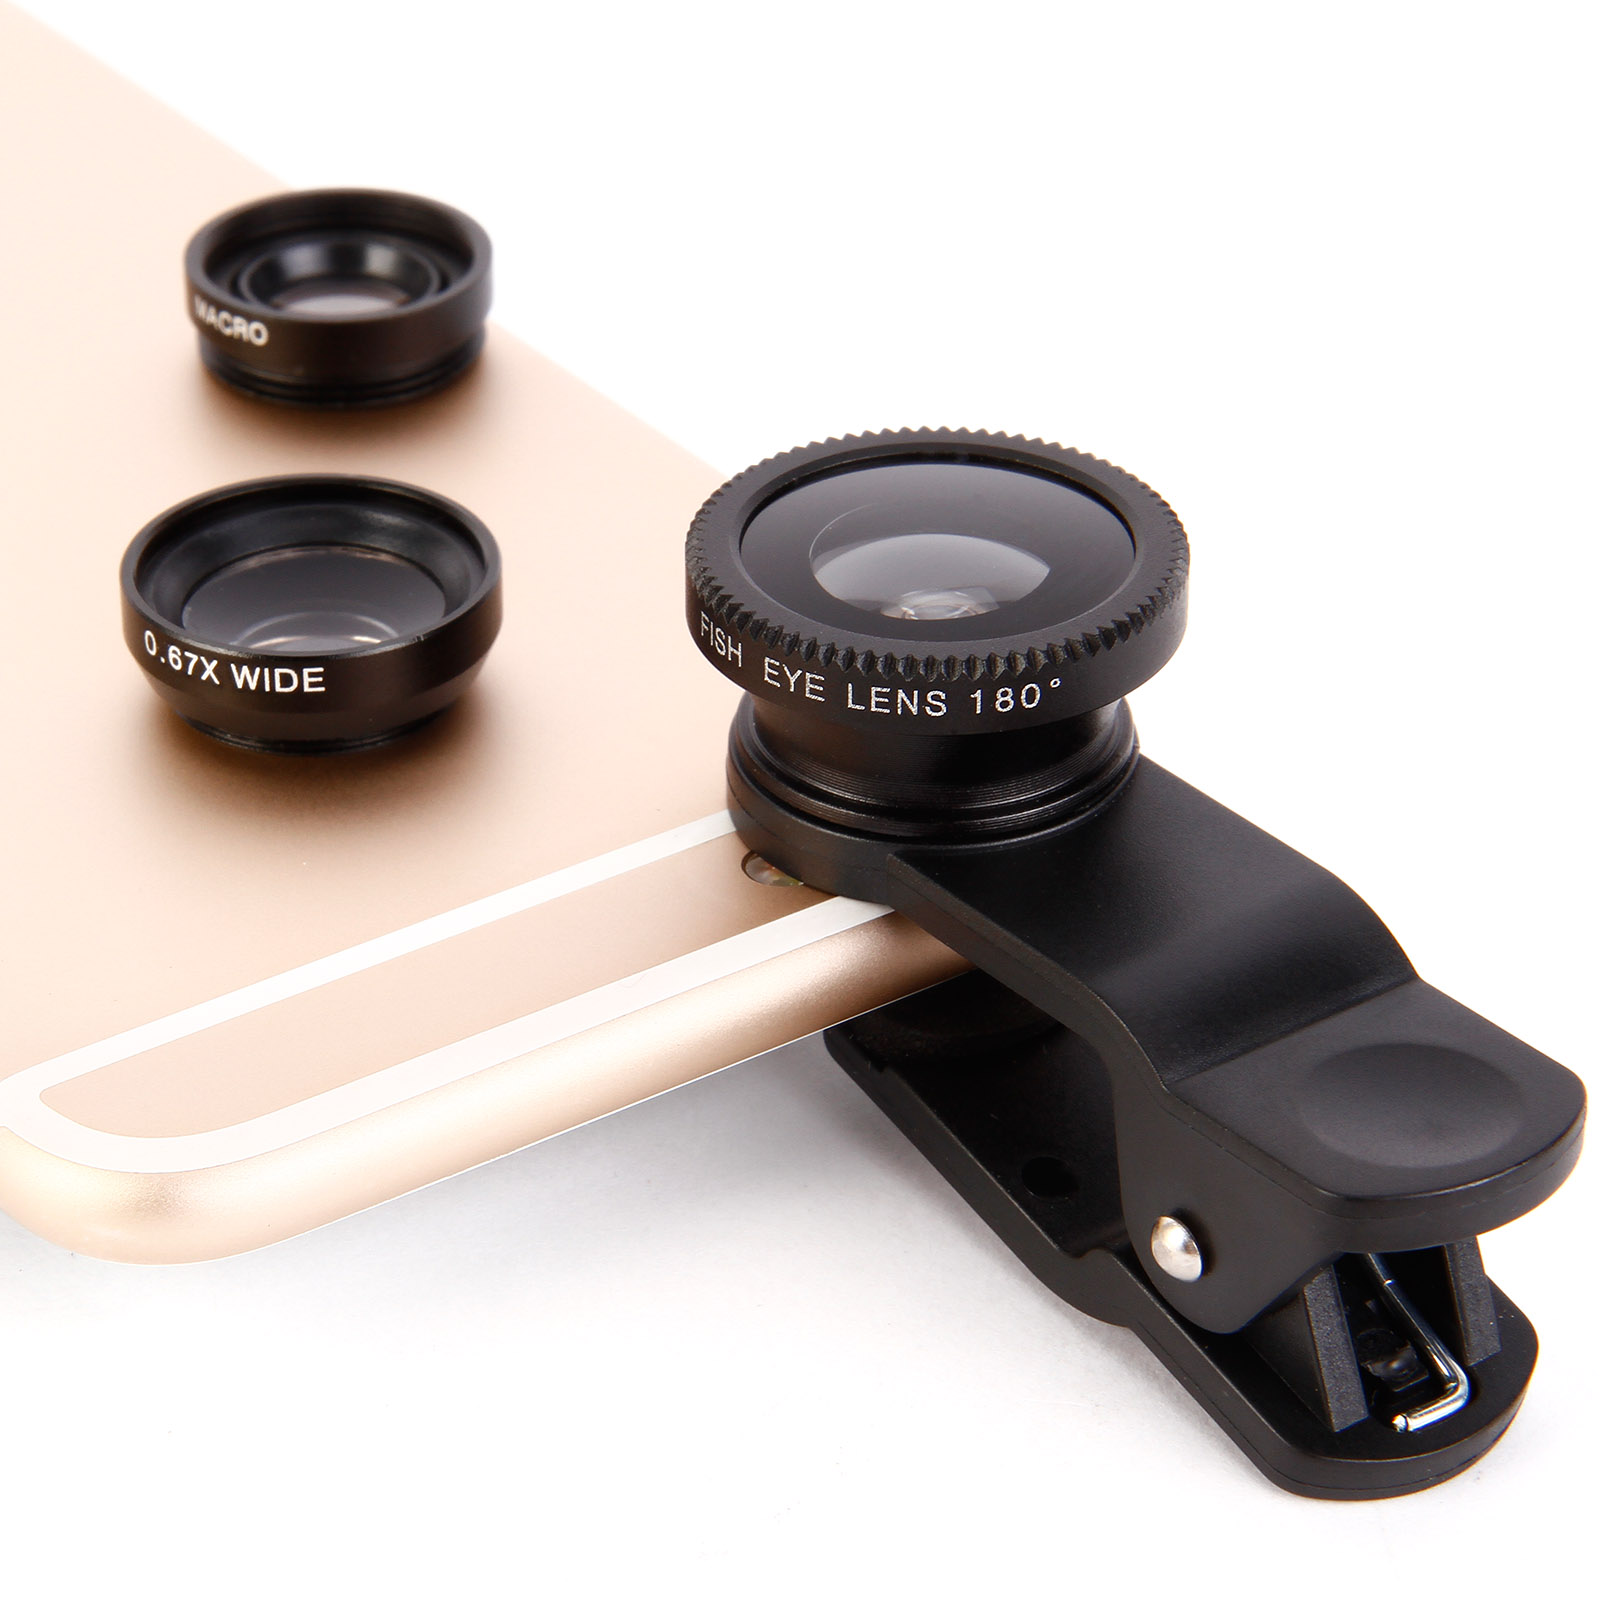 3in1 objectif appareil photo clip macro ange large fisheye. Black Bedroom Furniture Sets. Home Design Ideas